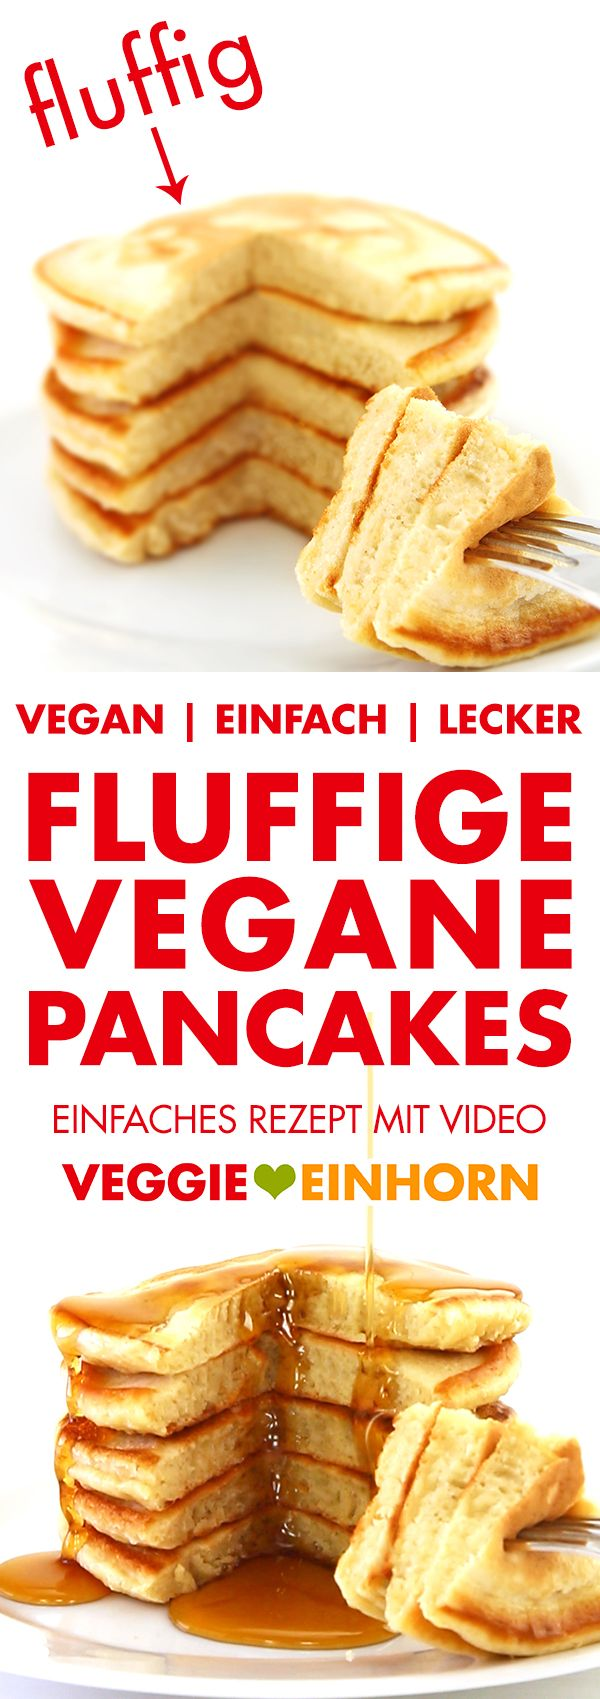 fluffige vegane pancakes rezept mhhh essen p pinterest vegane pfannkuchen pfannkuchen. Black Bedroom Furniture Sets. Home Design Ideas